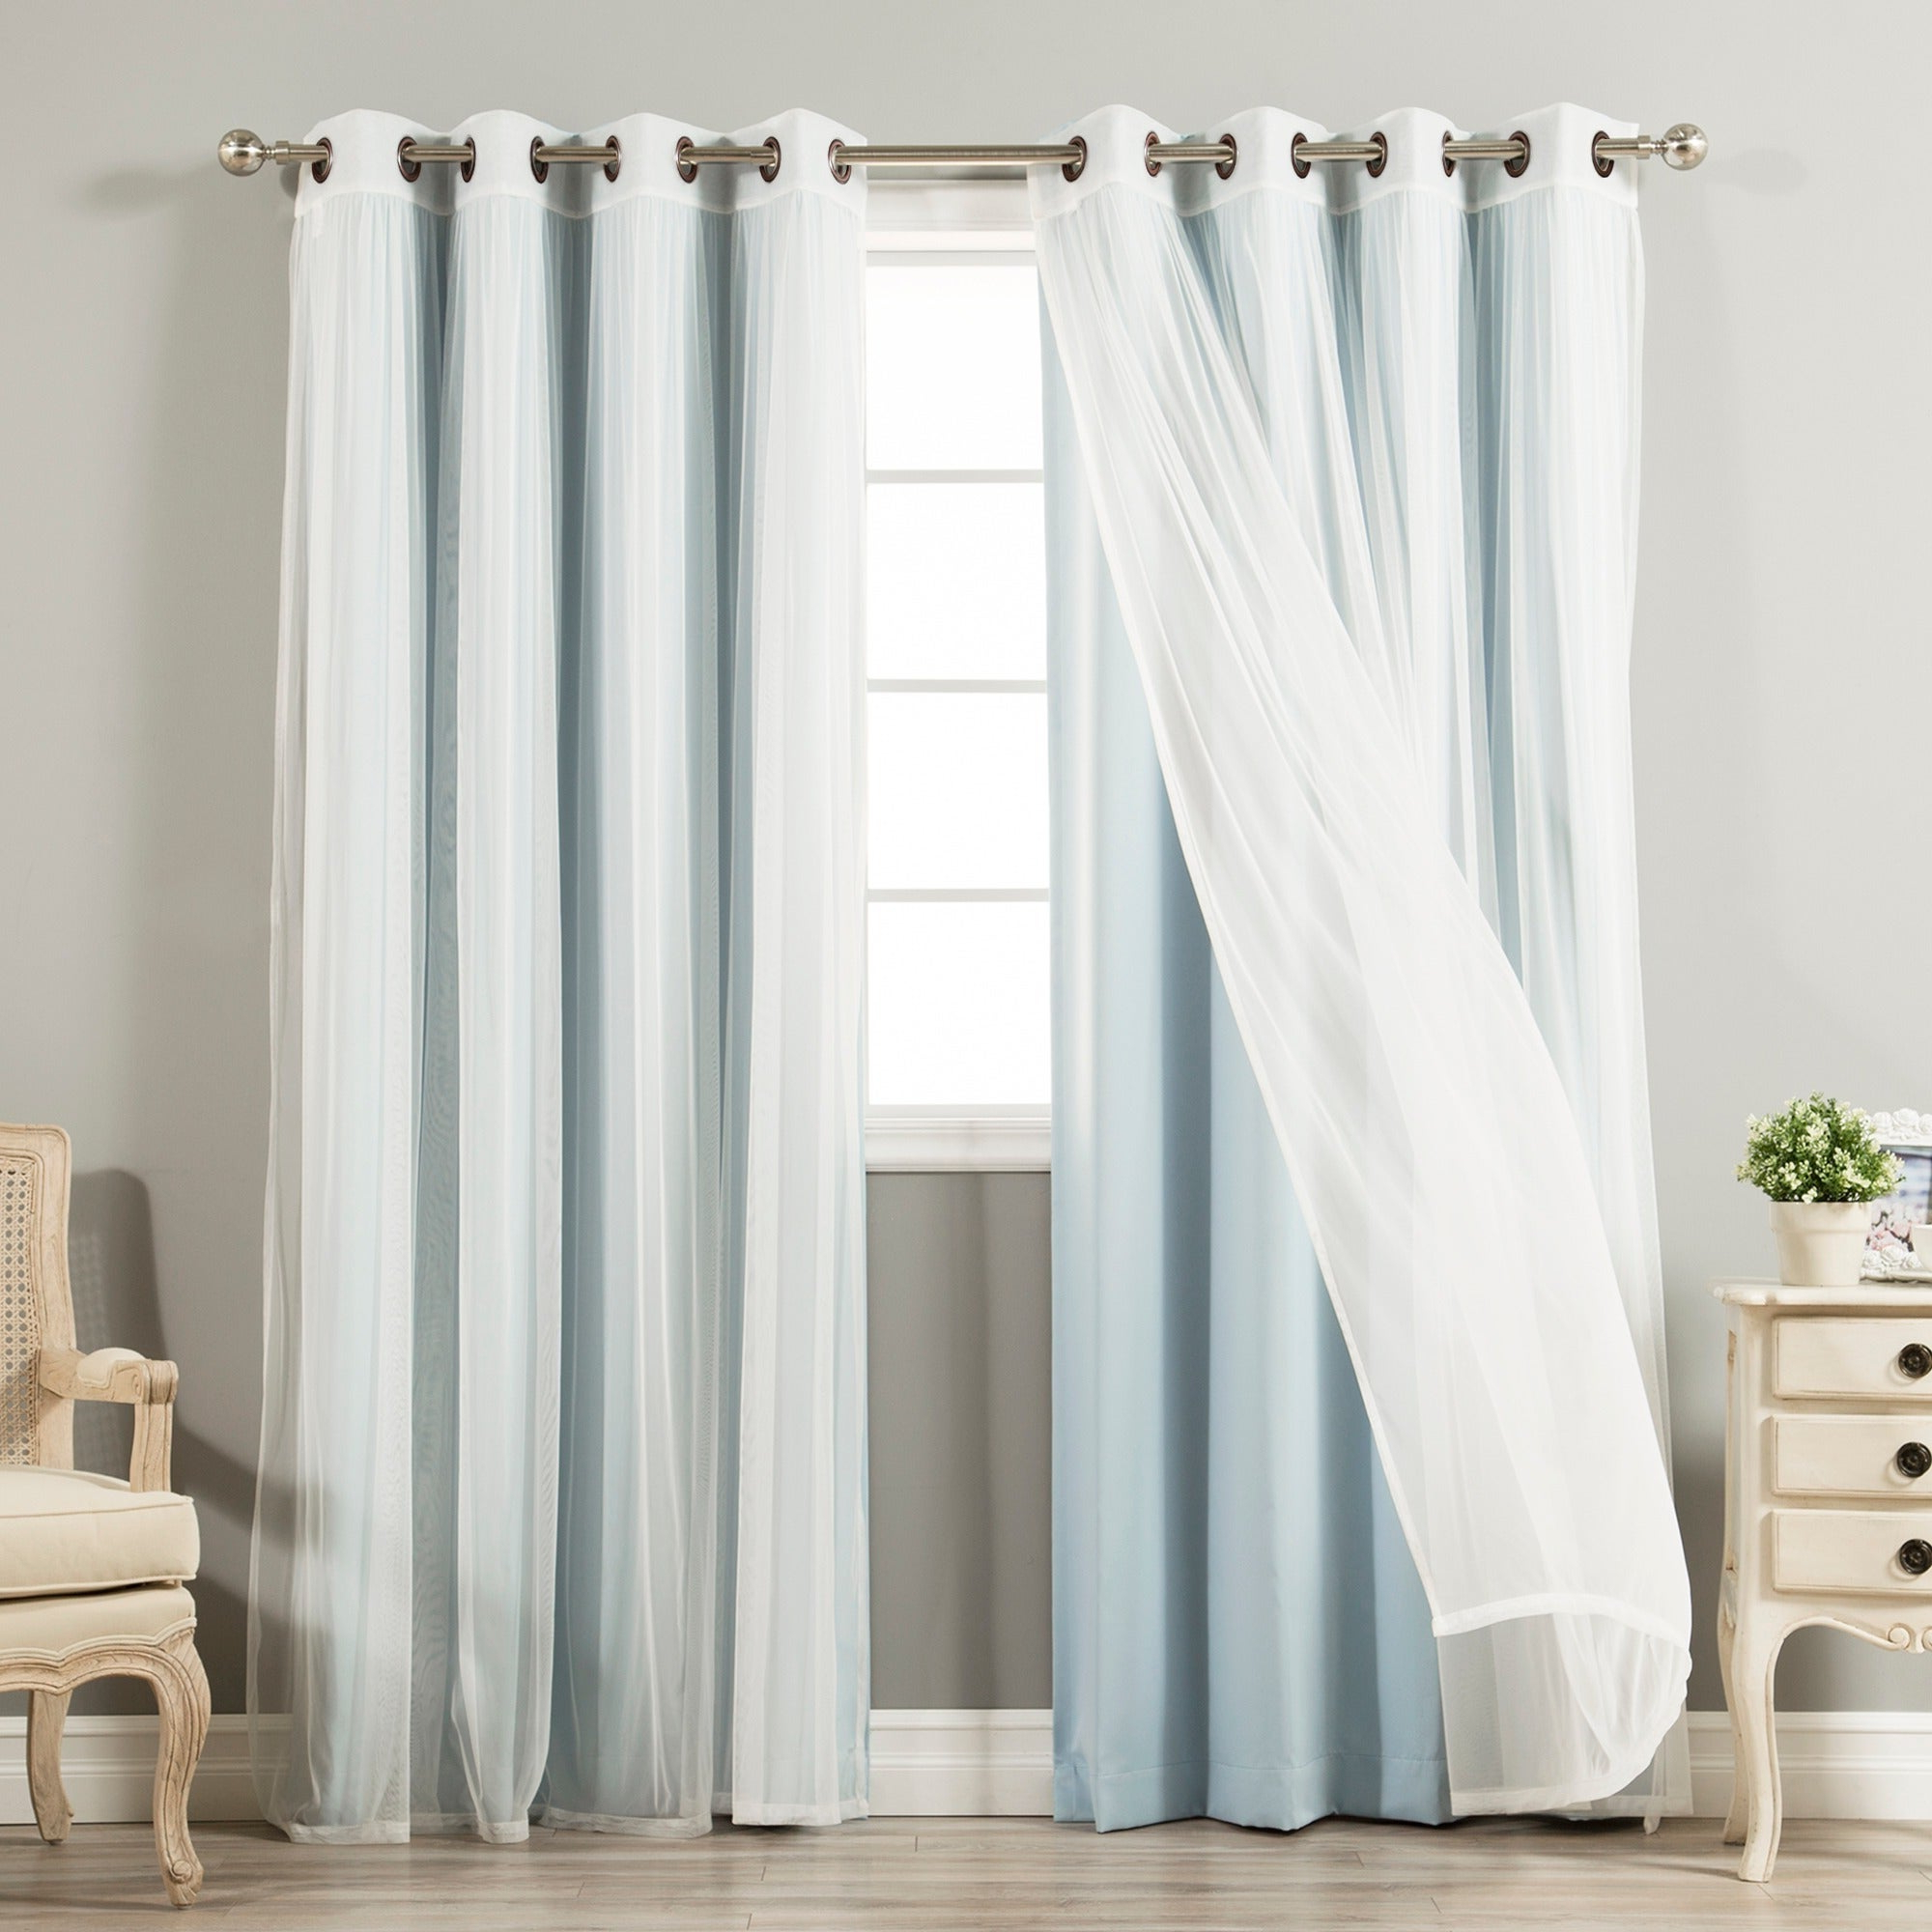 Well Known Mix And Match Blackout Blackout Curtains Panel Sets In Aurora Home Mix & Match Blackout Tulle Lace Bronze Grommet 4 Piece Curtain Panel Set (View 15 of 20)